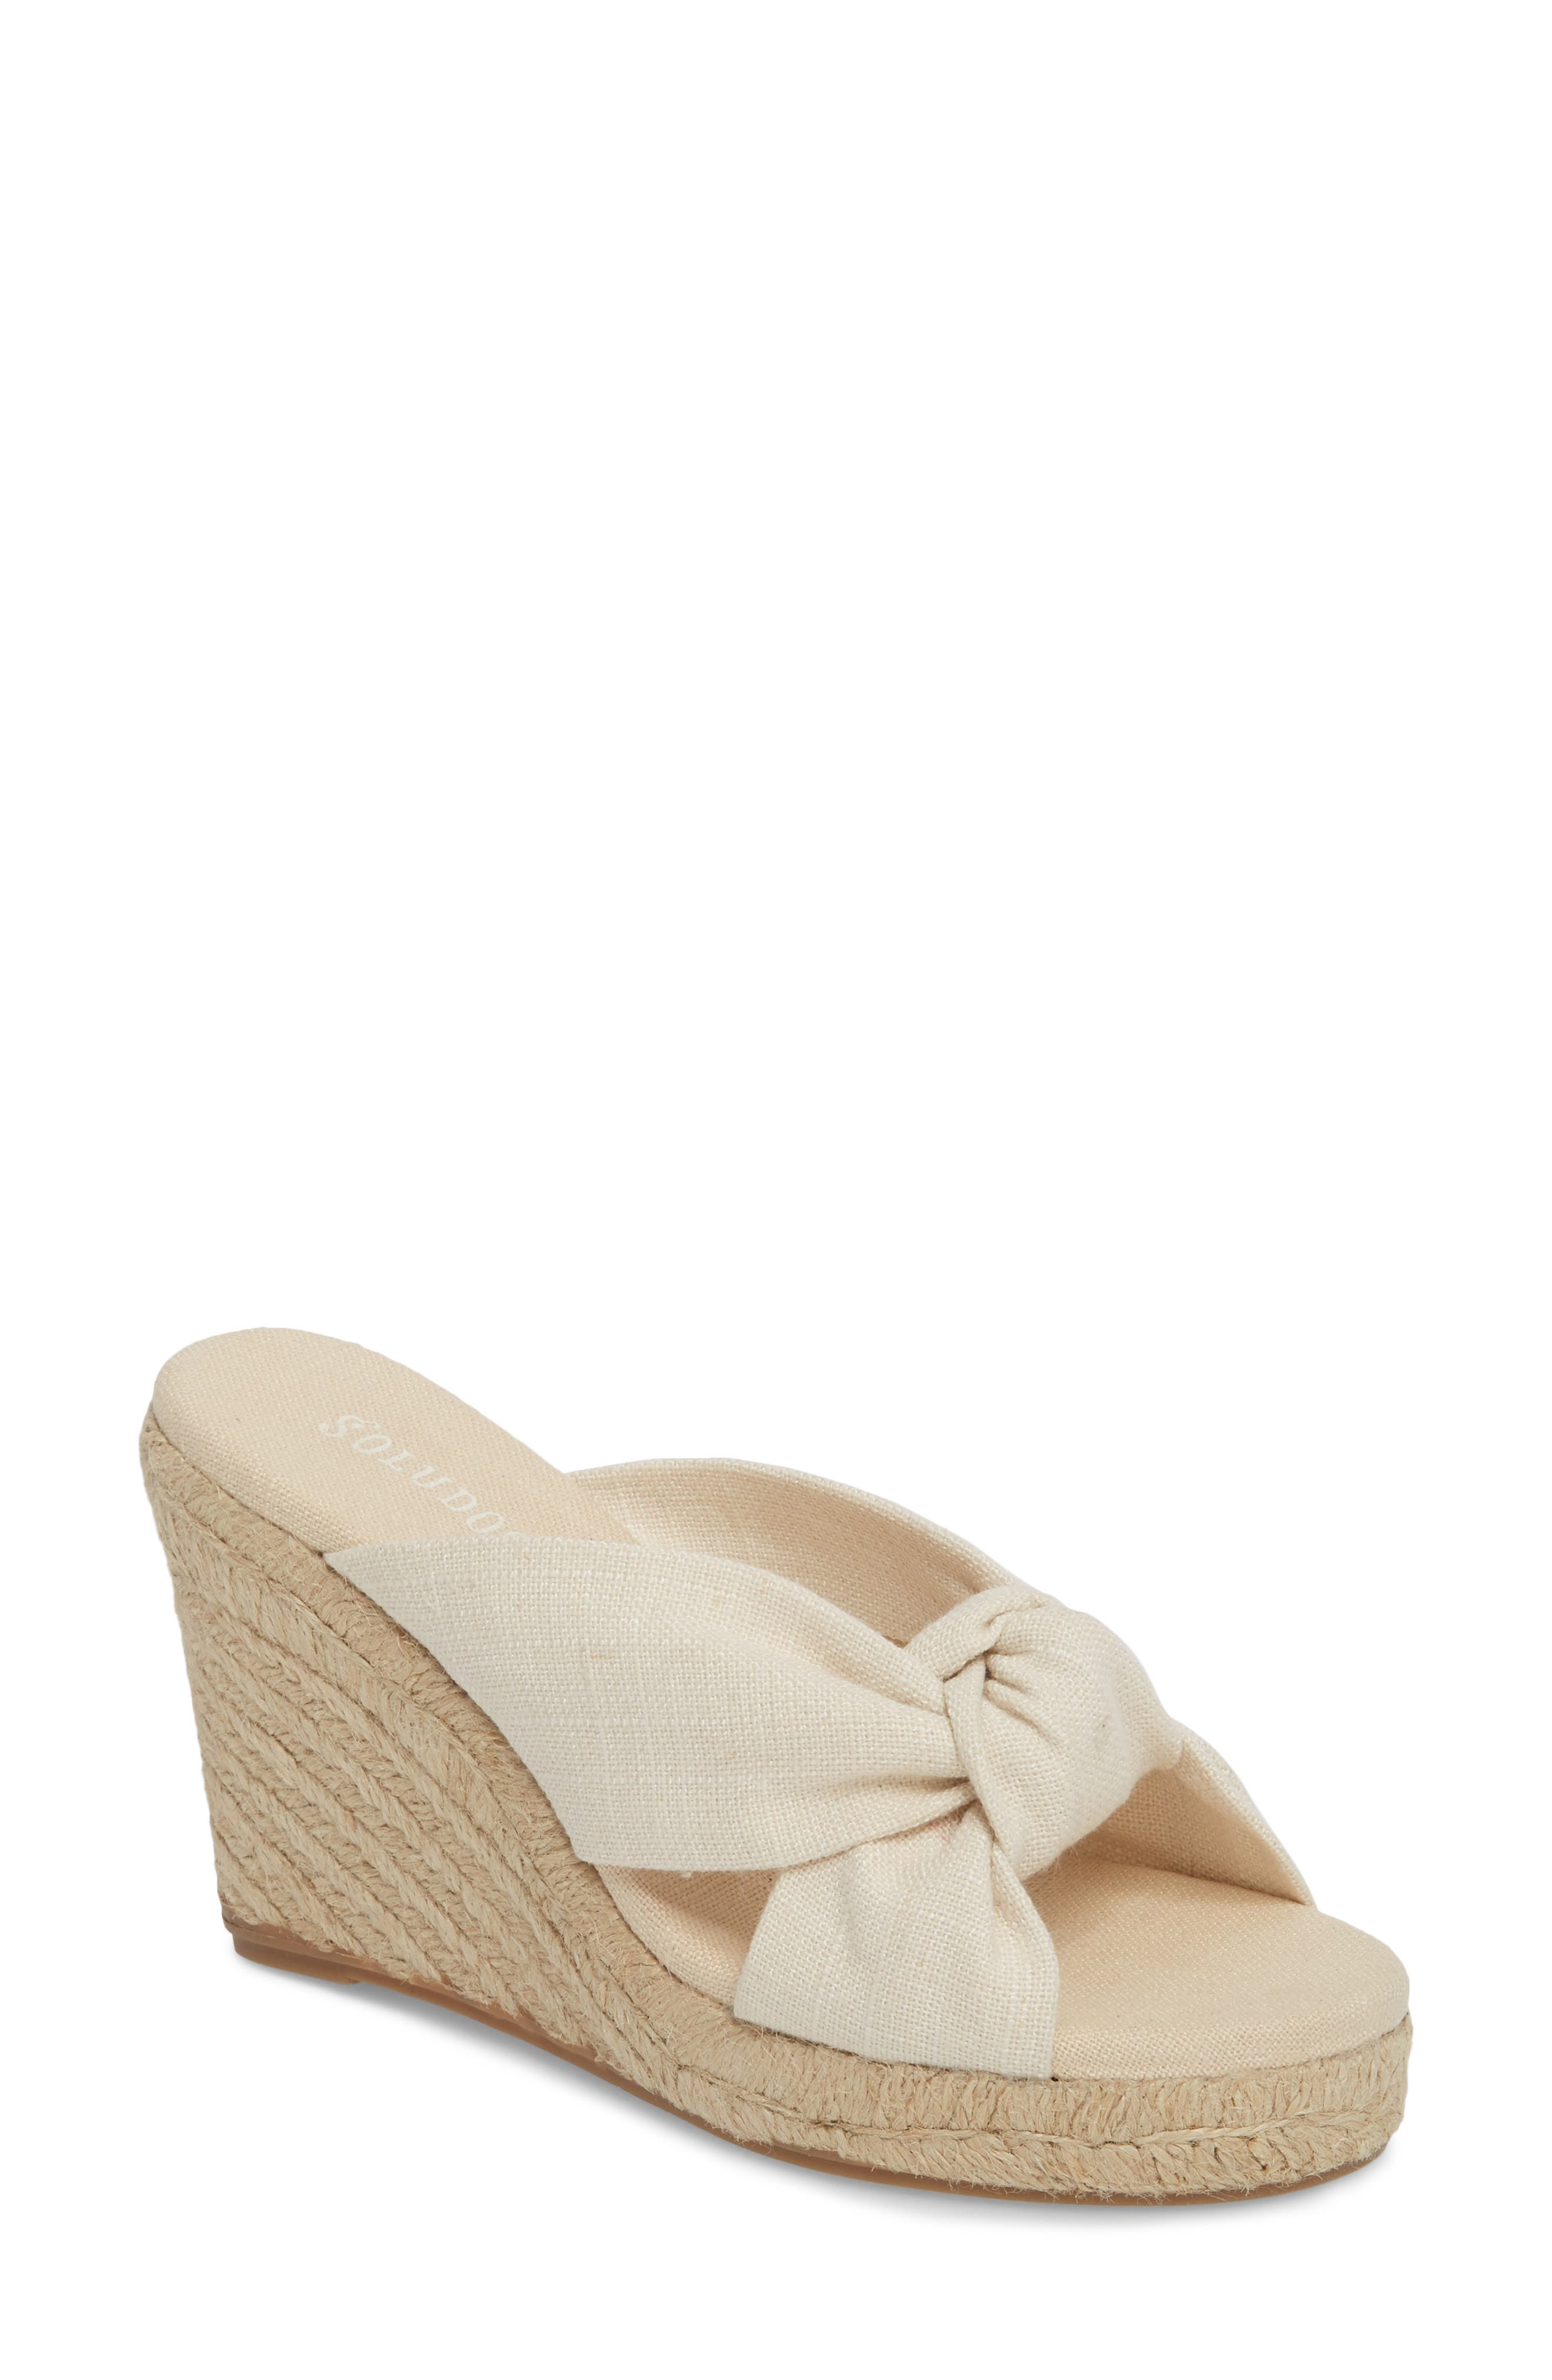 Soludos Women's Knotted Espadrille Wedge Sandal Z4UQUa3